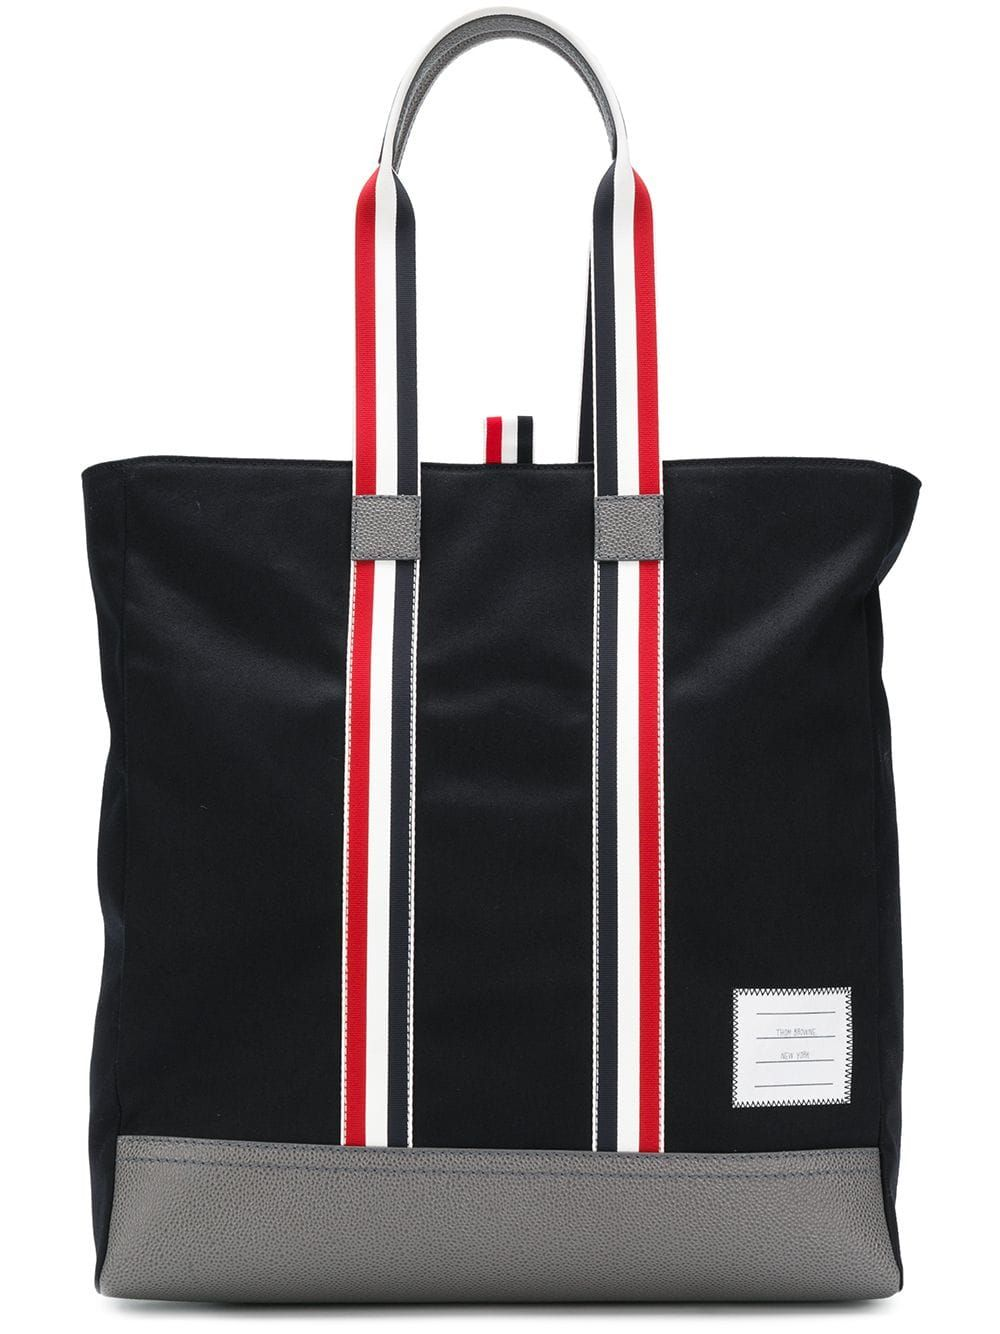 THOM BROWNE THOM BROWNE LEATHER BASE UNSTRUCTURED TOTE BAG - BLUE.   thombrowne  bags  leather  hand bags  tote  cotton b5300a0f51f34